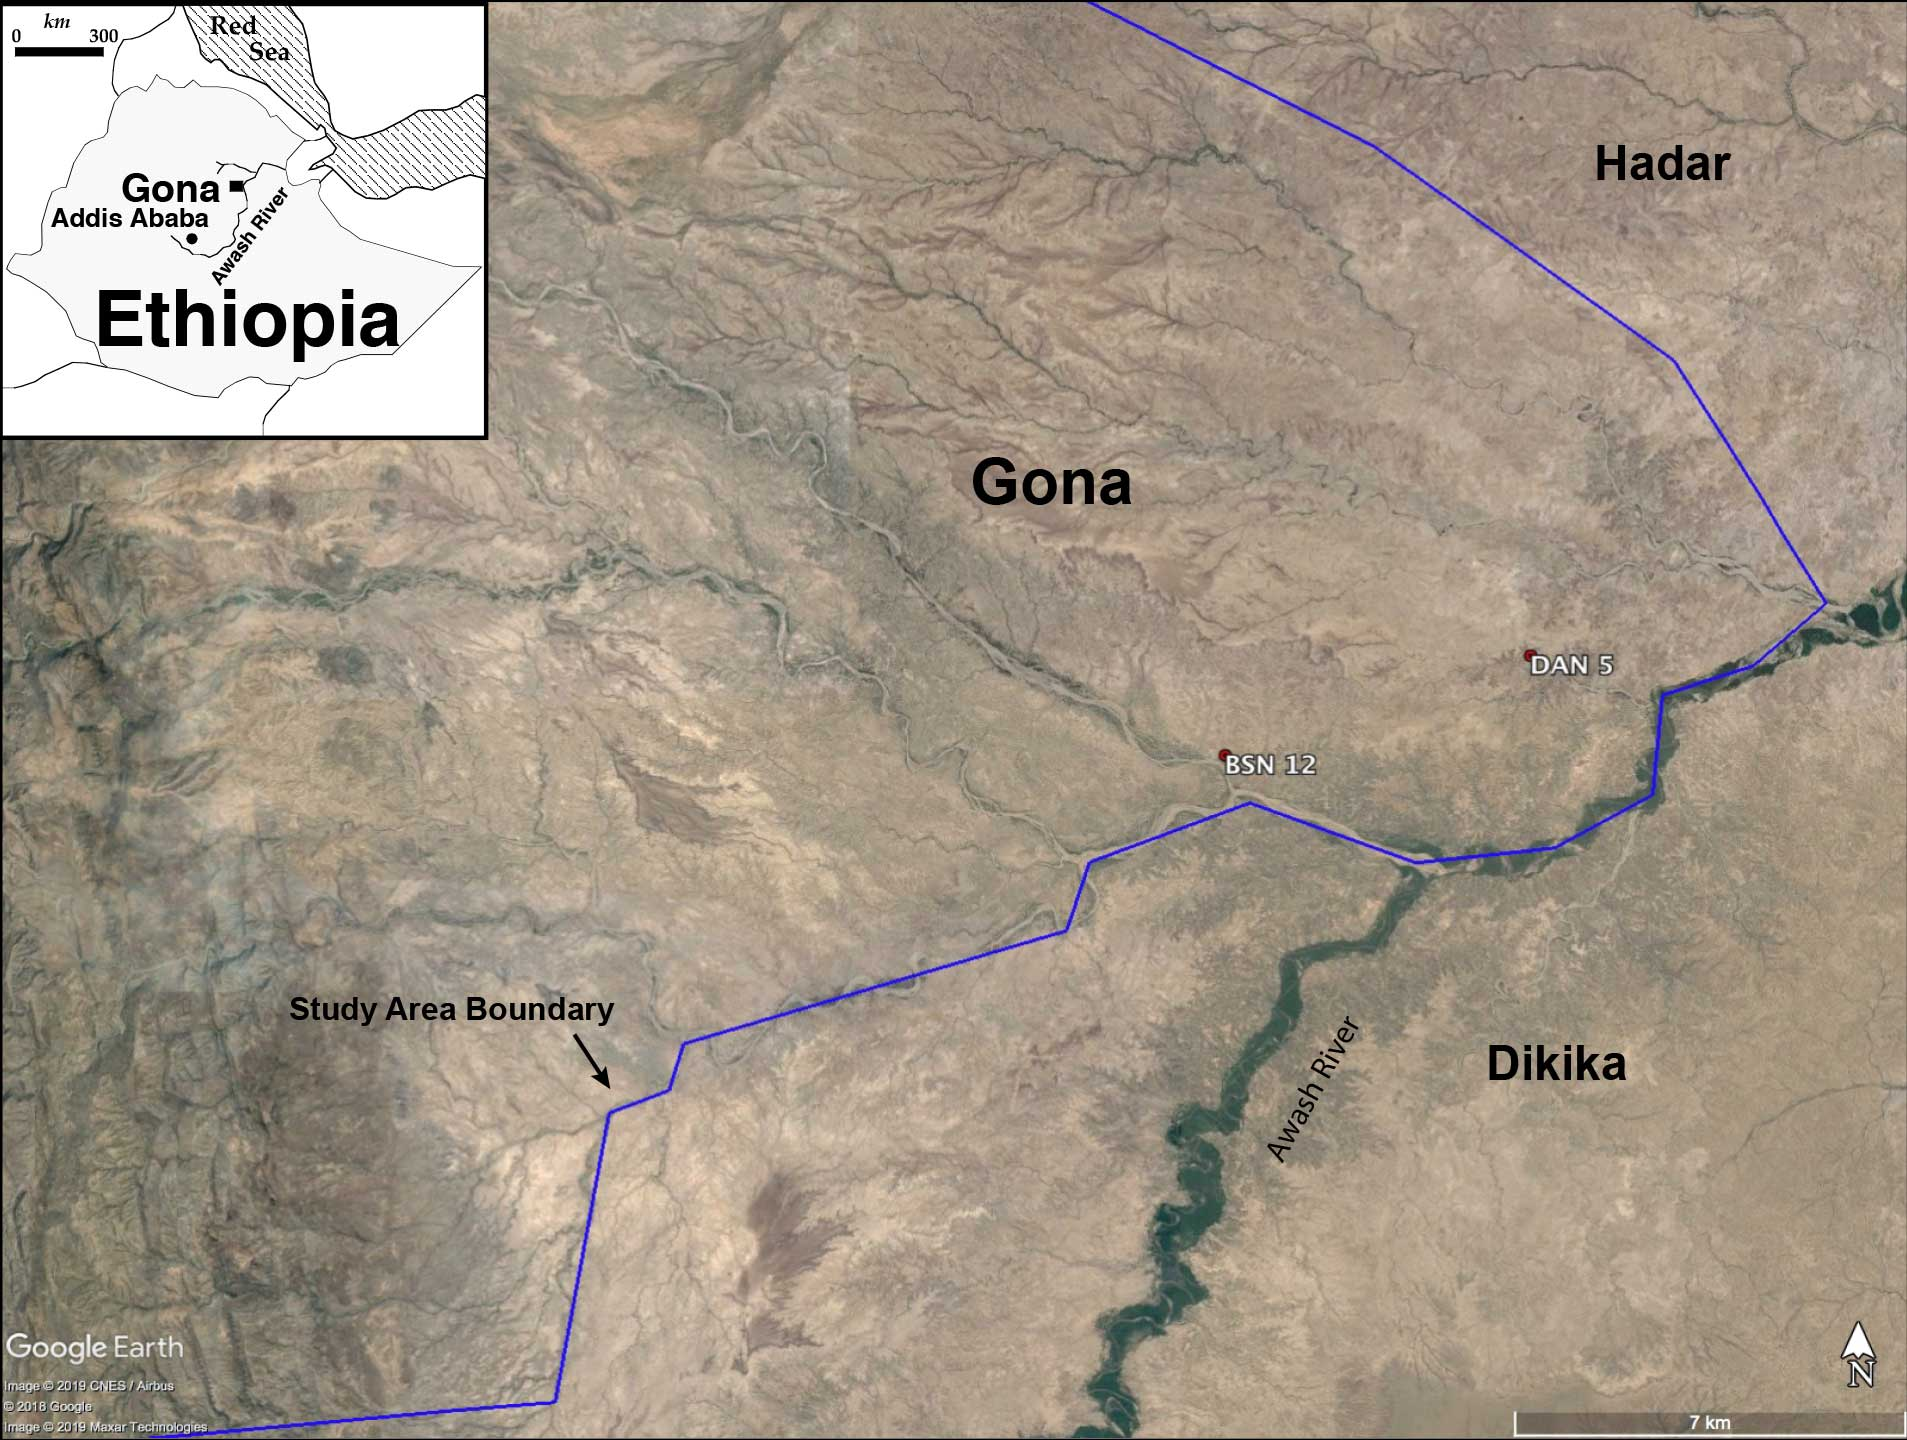 The map shows Gona, with an inset showing its location in the center of Ethiopia. A blue line shows the study area boundary